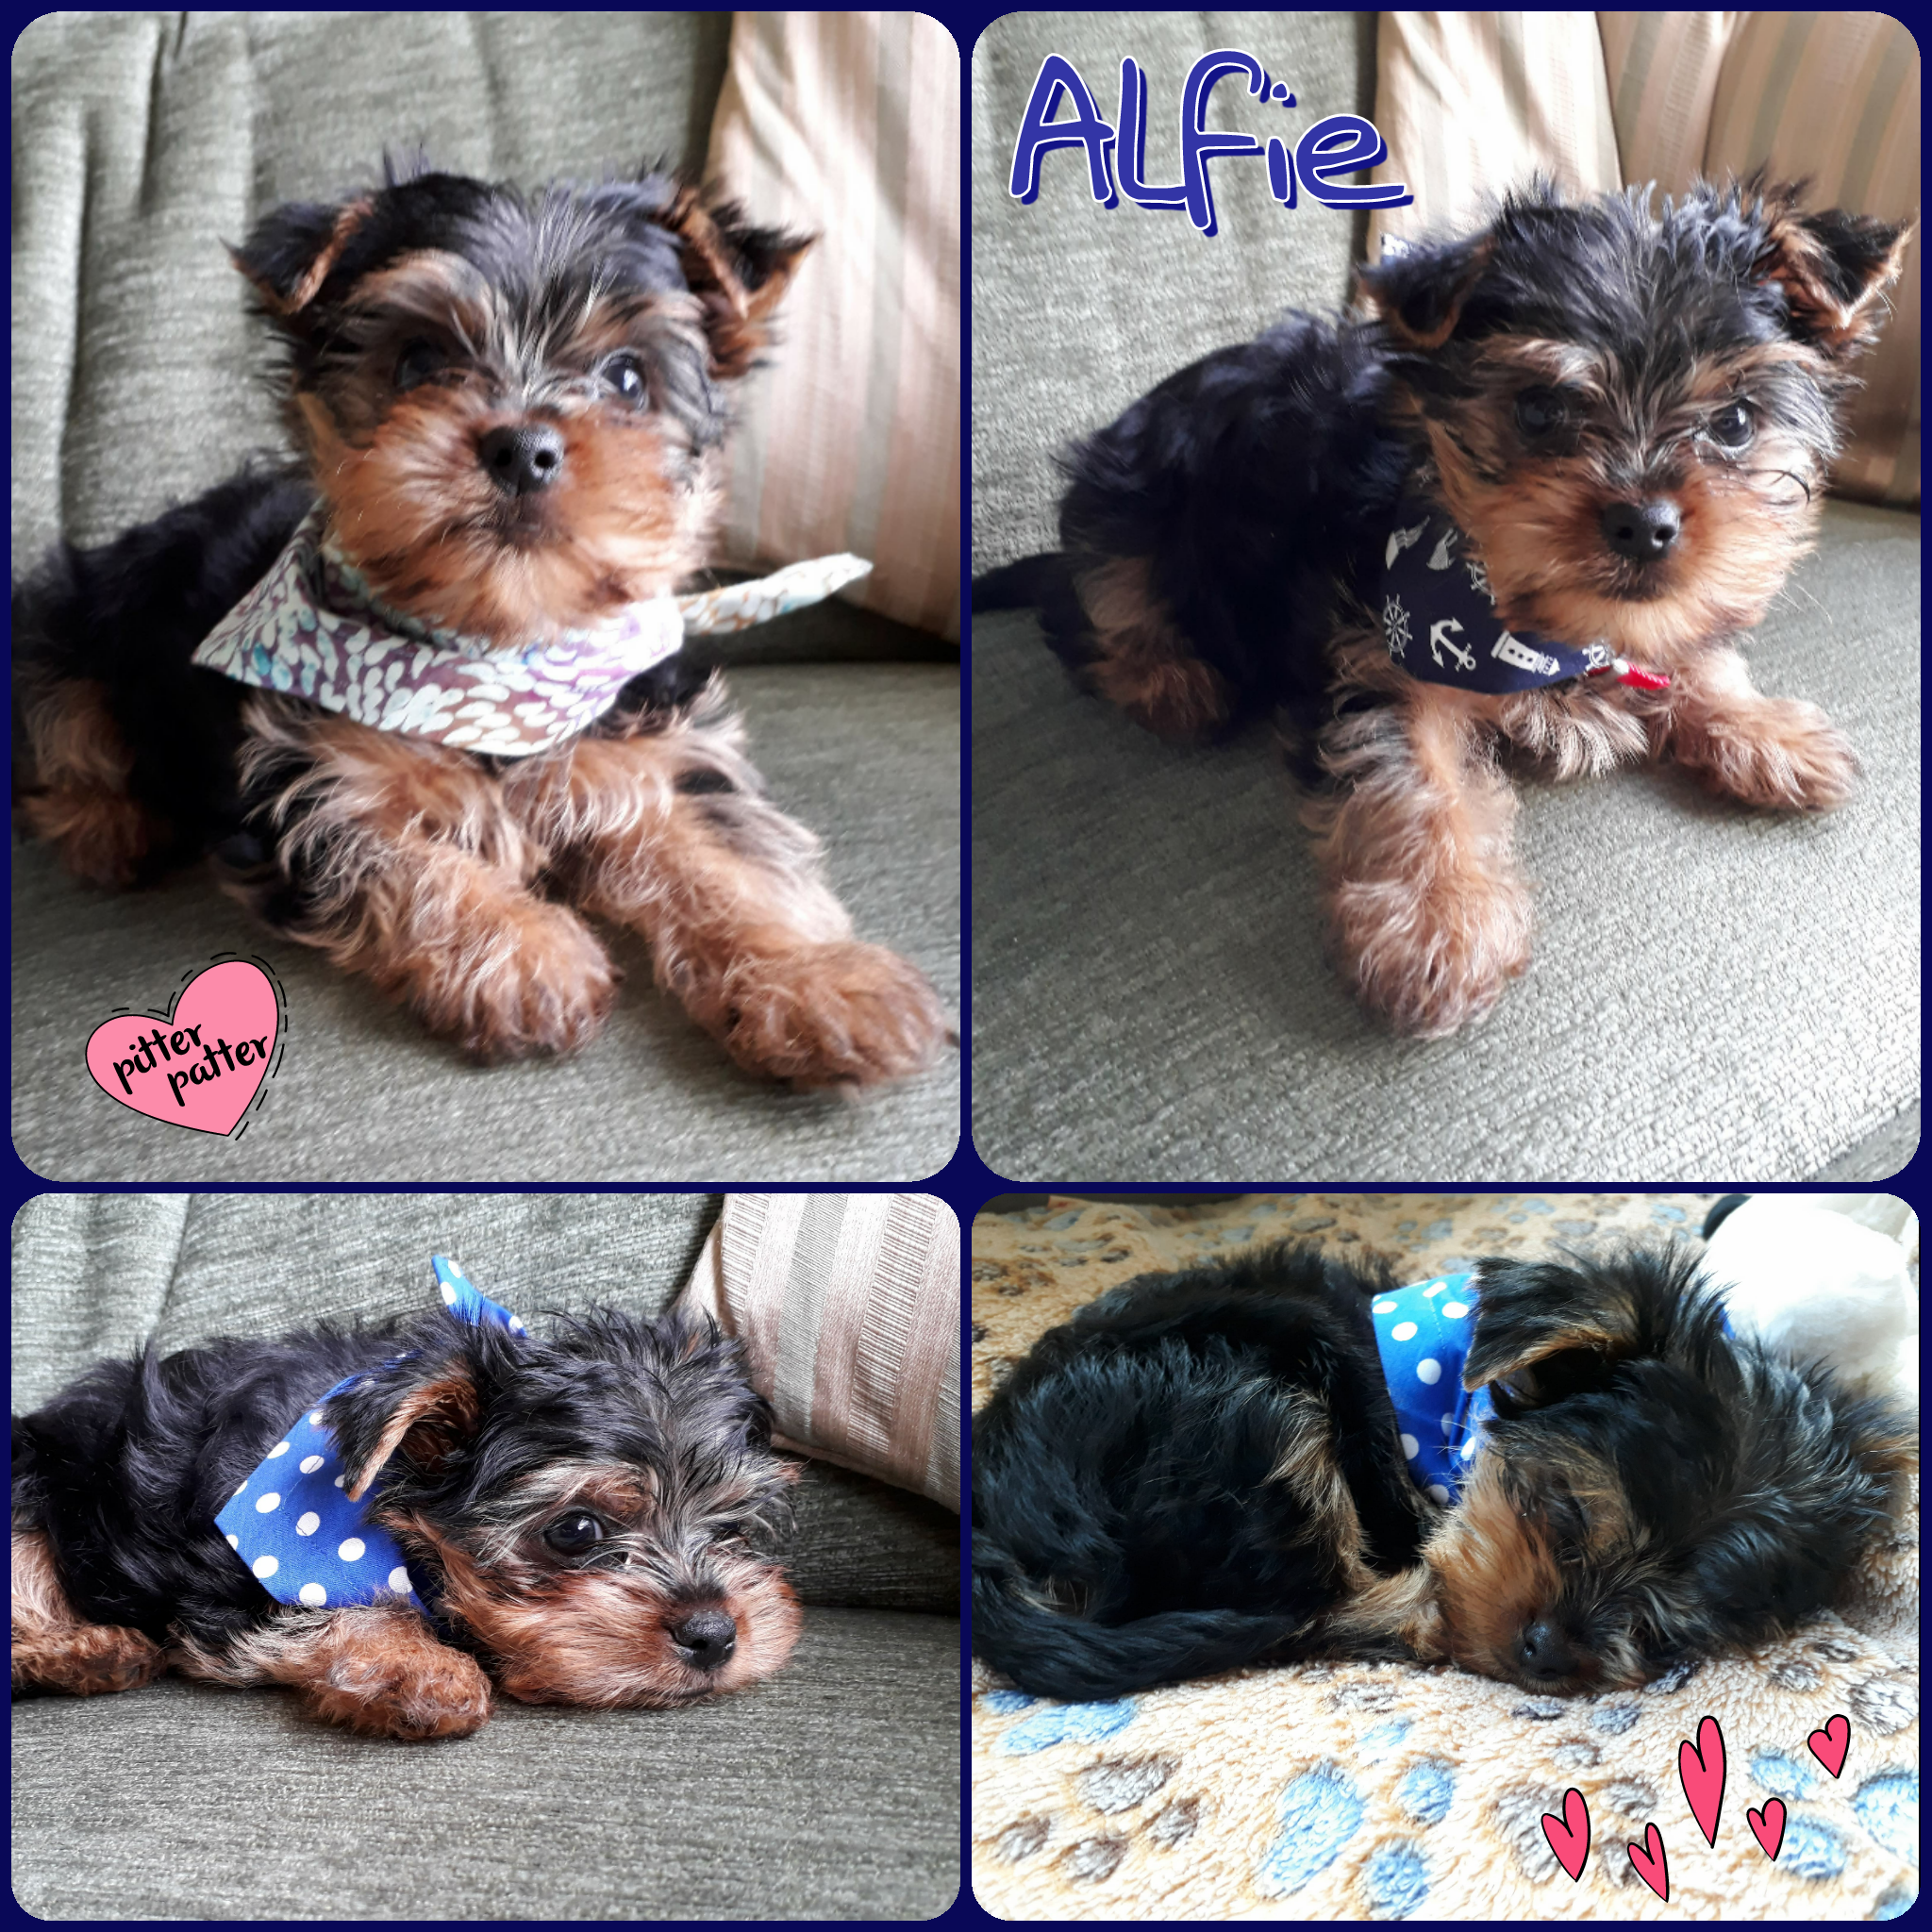 Our Teeny Tiny size is perfect for the tiniest puppies like Alfie, and teacup dogs. I can also custom make Teeny bandanas that fasten with velcro if your pet is really tiny....I've made these for ferrets and rabbits too!!  ~Teenytinybandana #tinydogaccessories #teacupdogs #catbandanas #giftsforpuppies #choosingabandana #bandanasizes #bestbandanas #dogbandanas #Yorkiepuppy #Yorkshireterrier #puppyaccessories